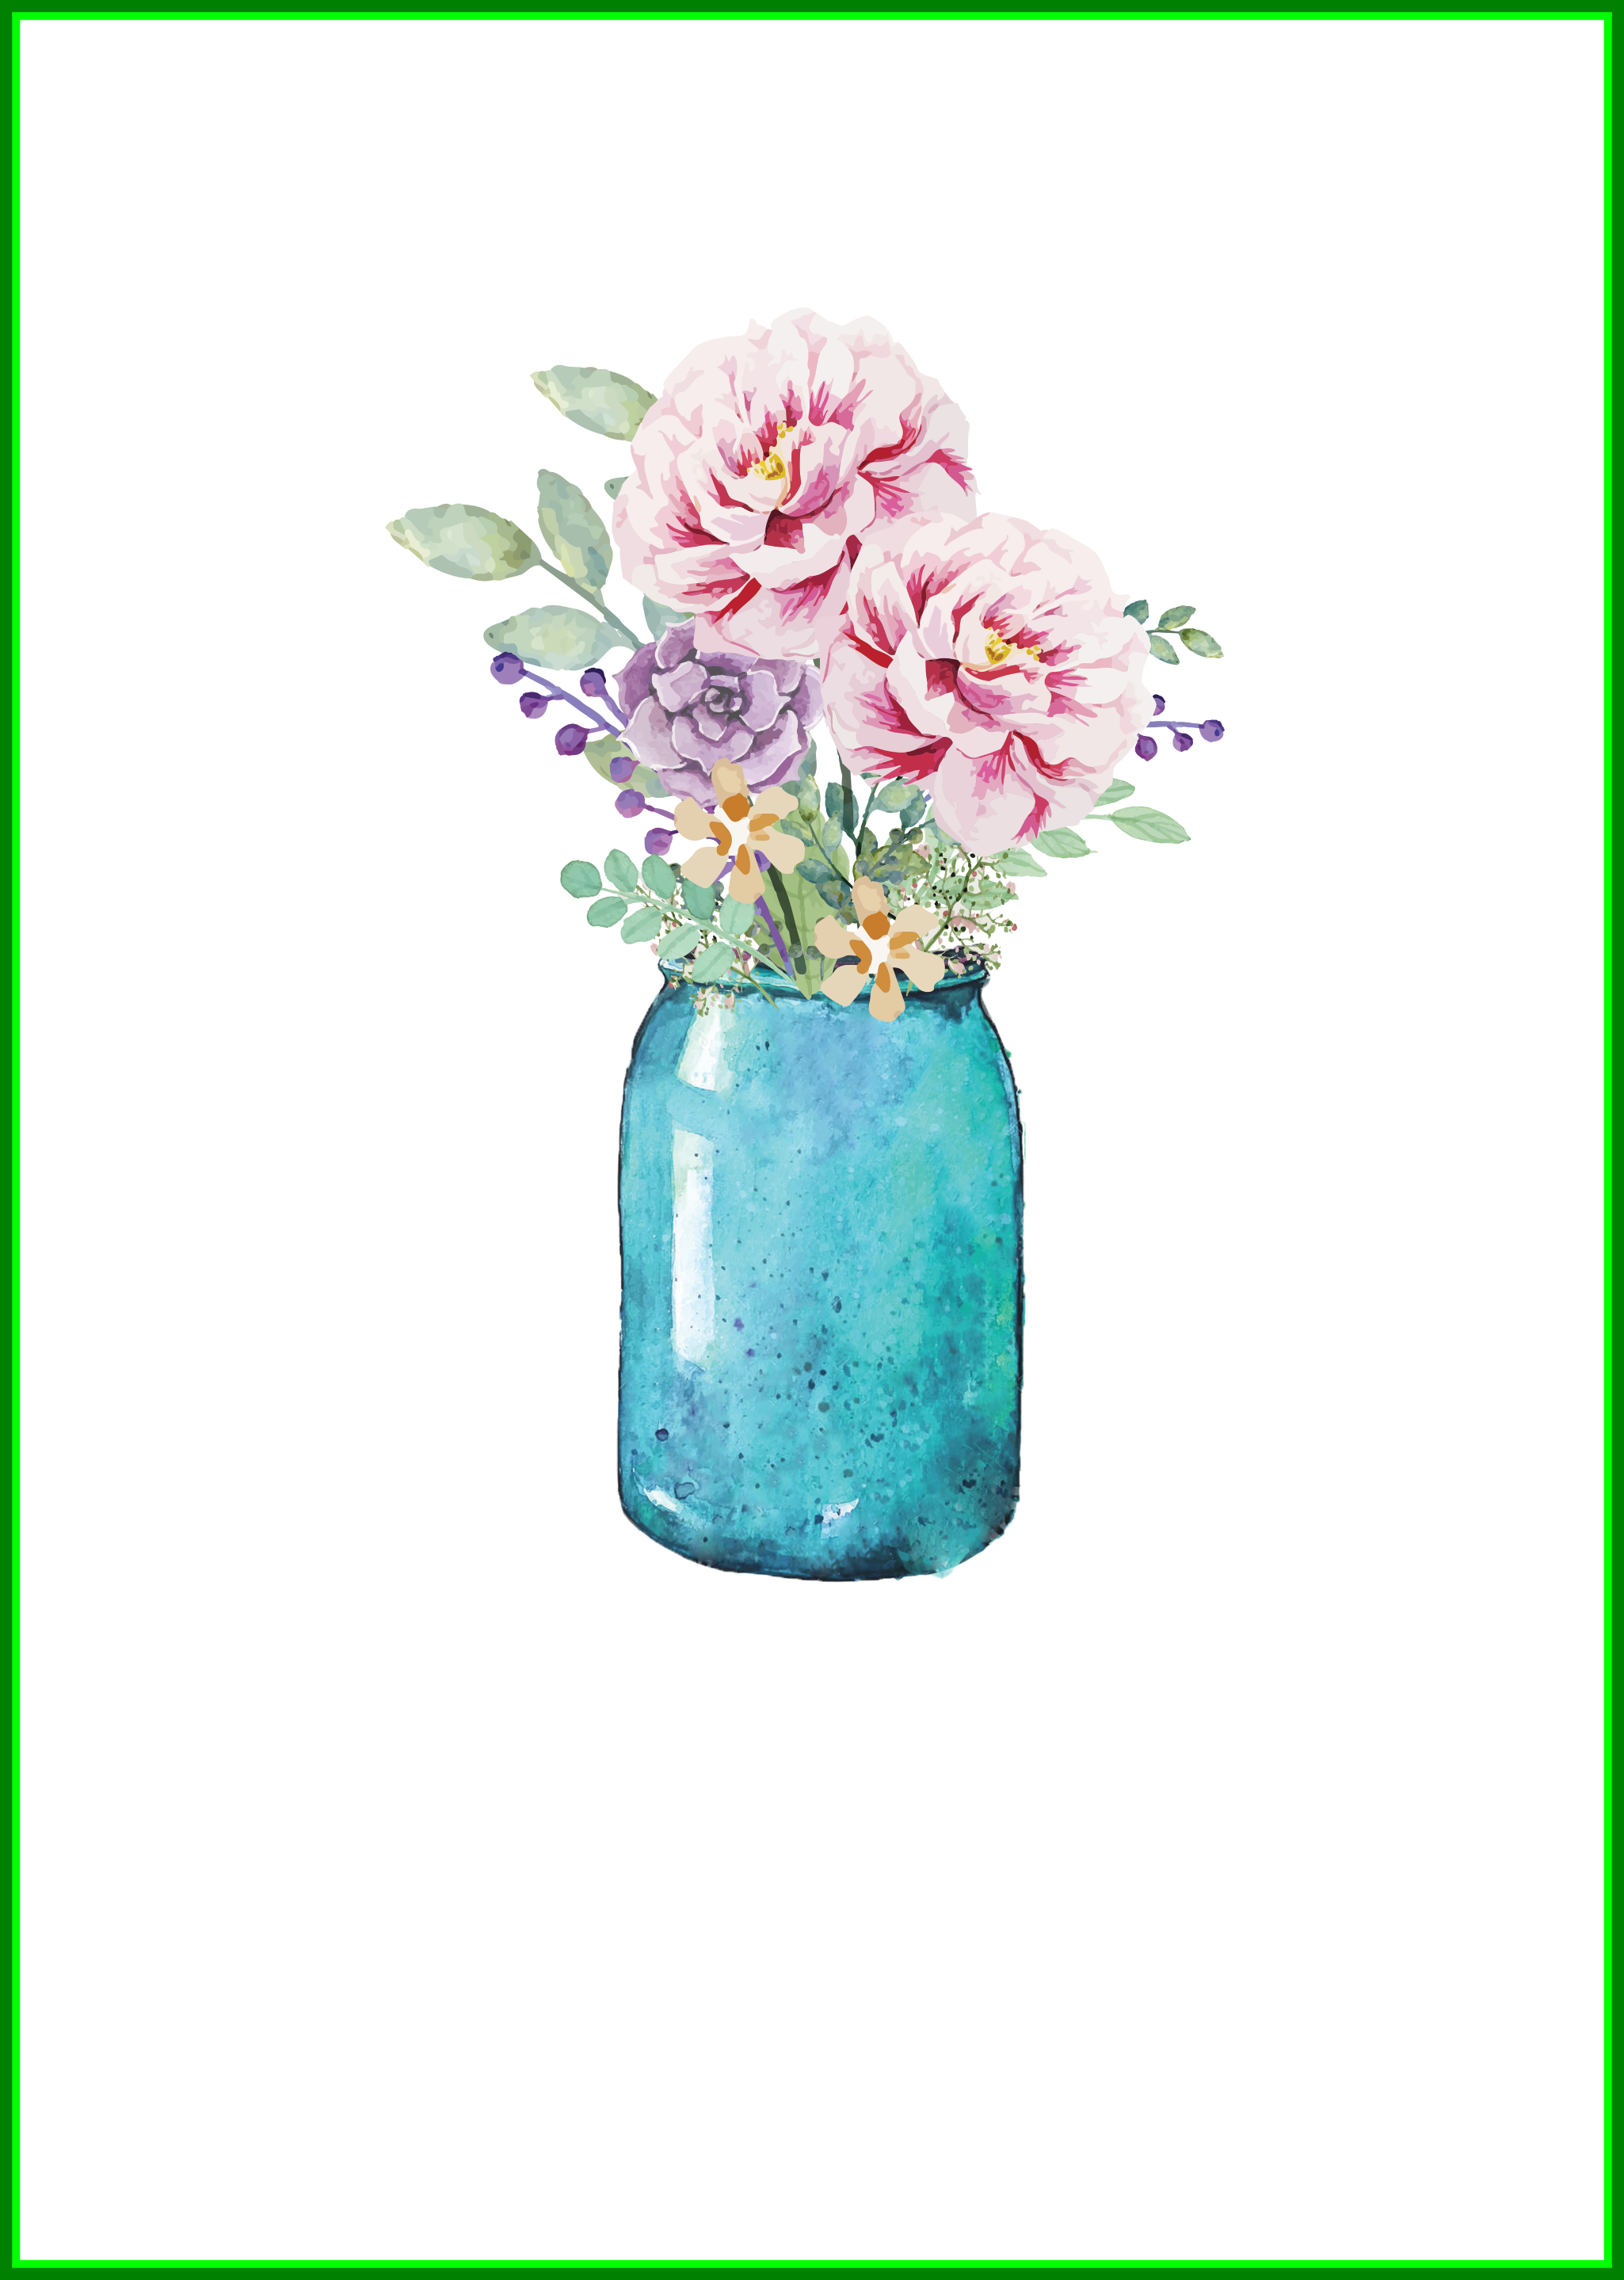 Jar of money clipart clipart free 20 Ideas of Mason Jar Bouquet Clipart - Flower Bouquet clipart free